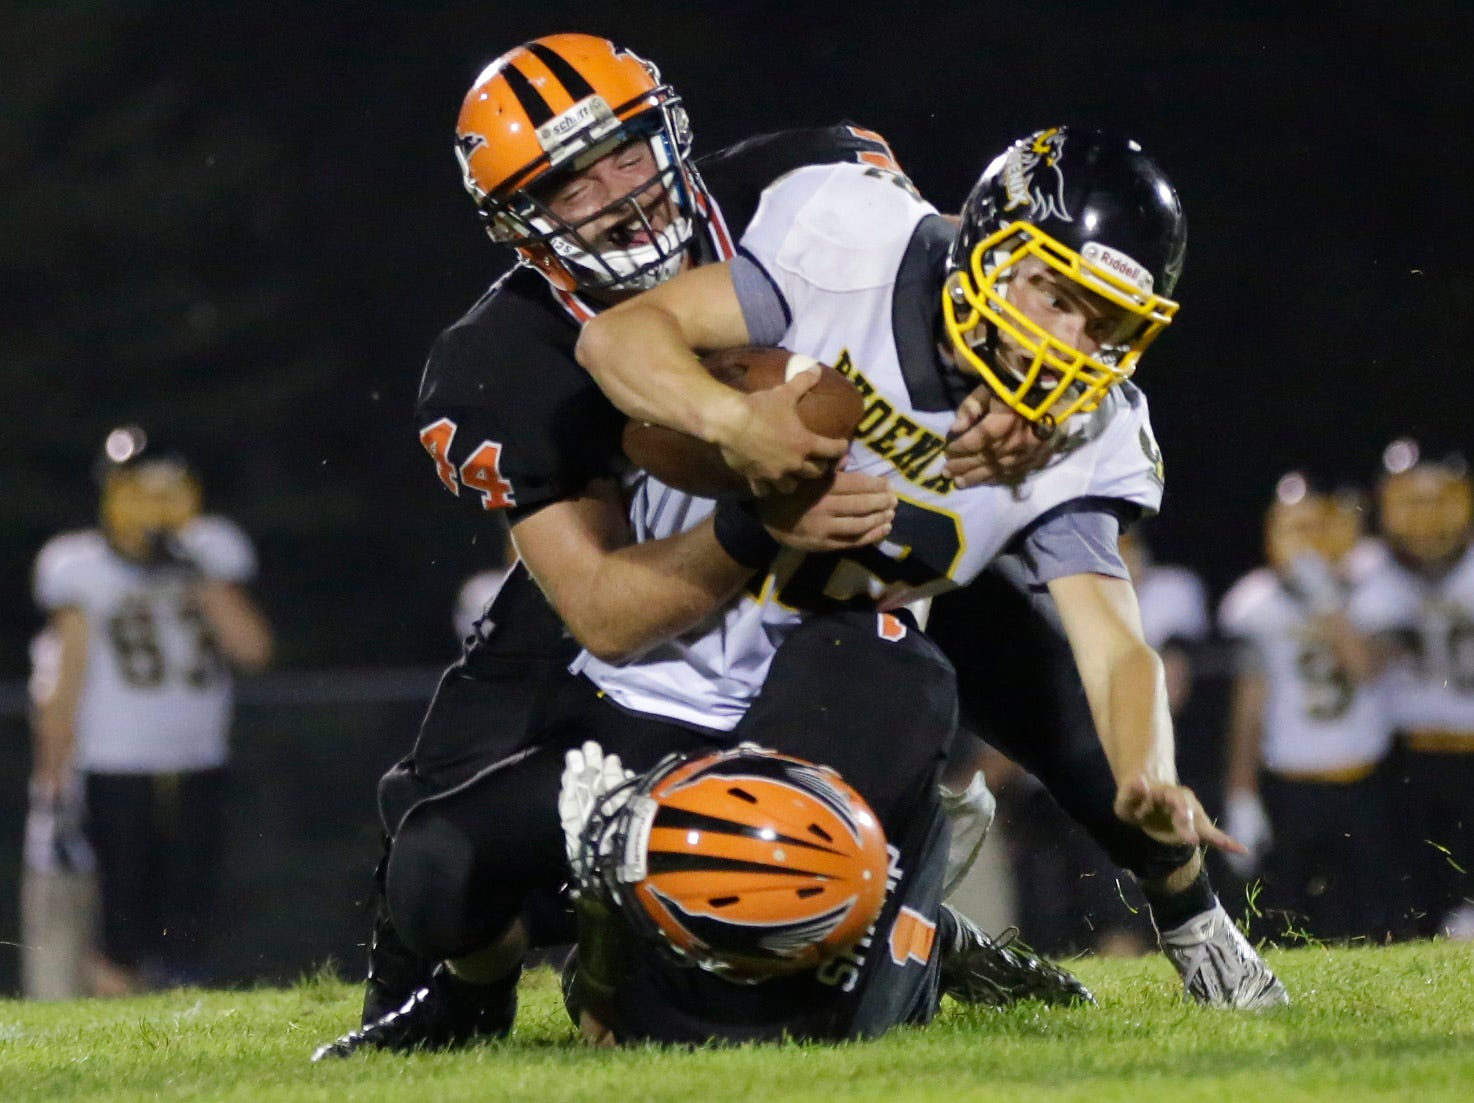 Iola's Kyle Huettner (44) and Alex Sharp (1) tackle Montello's Guenther Hebbe (22) during the first football game of the season, between Iola-Scandinavia and Montello/Princeton/Green Lake at Thunderbird Field in Scandinavia Friday, August 17, 2018.